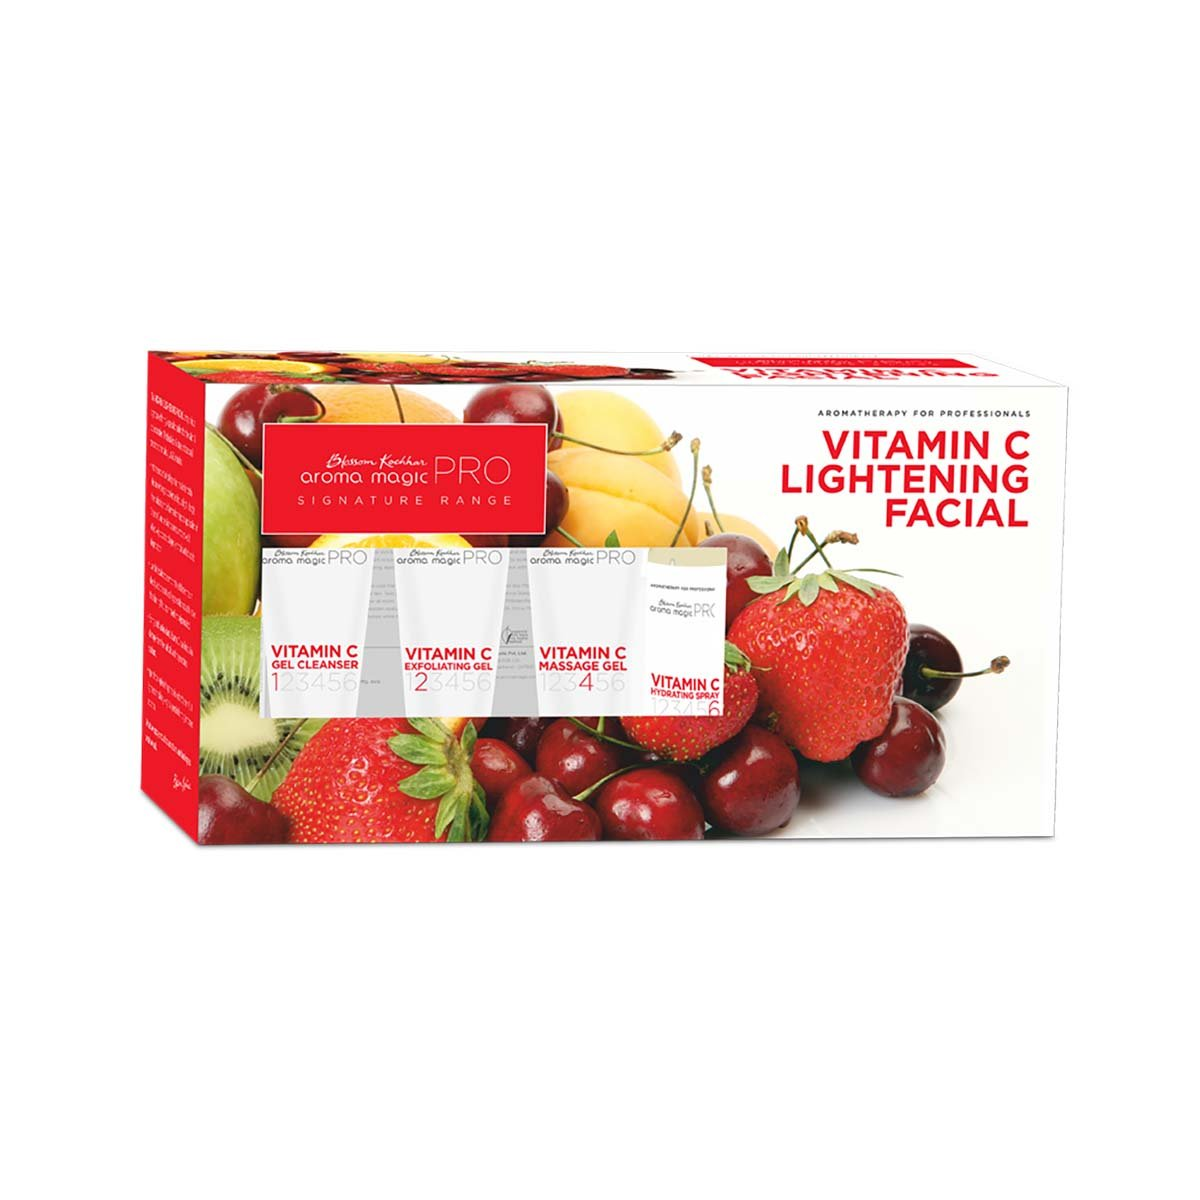 Aroma Magic Vitamin C Skin Lightening Facial Kit product image